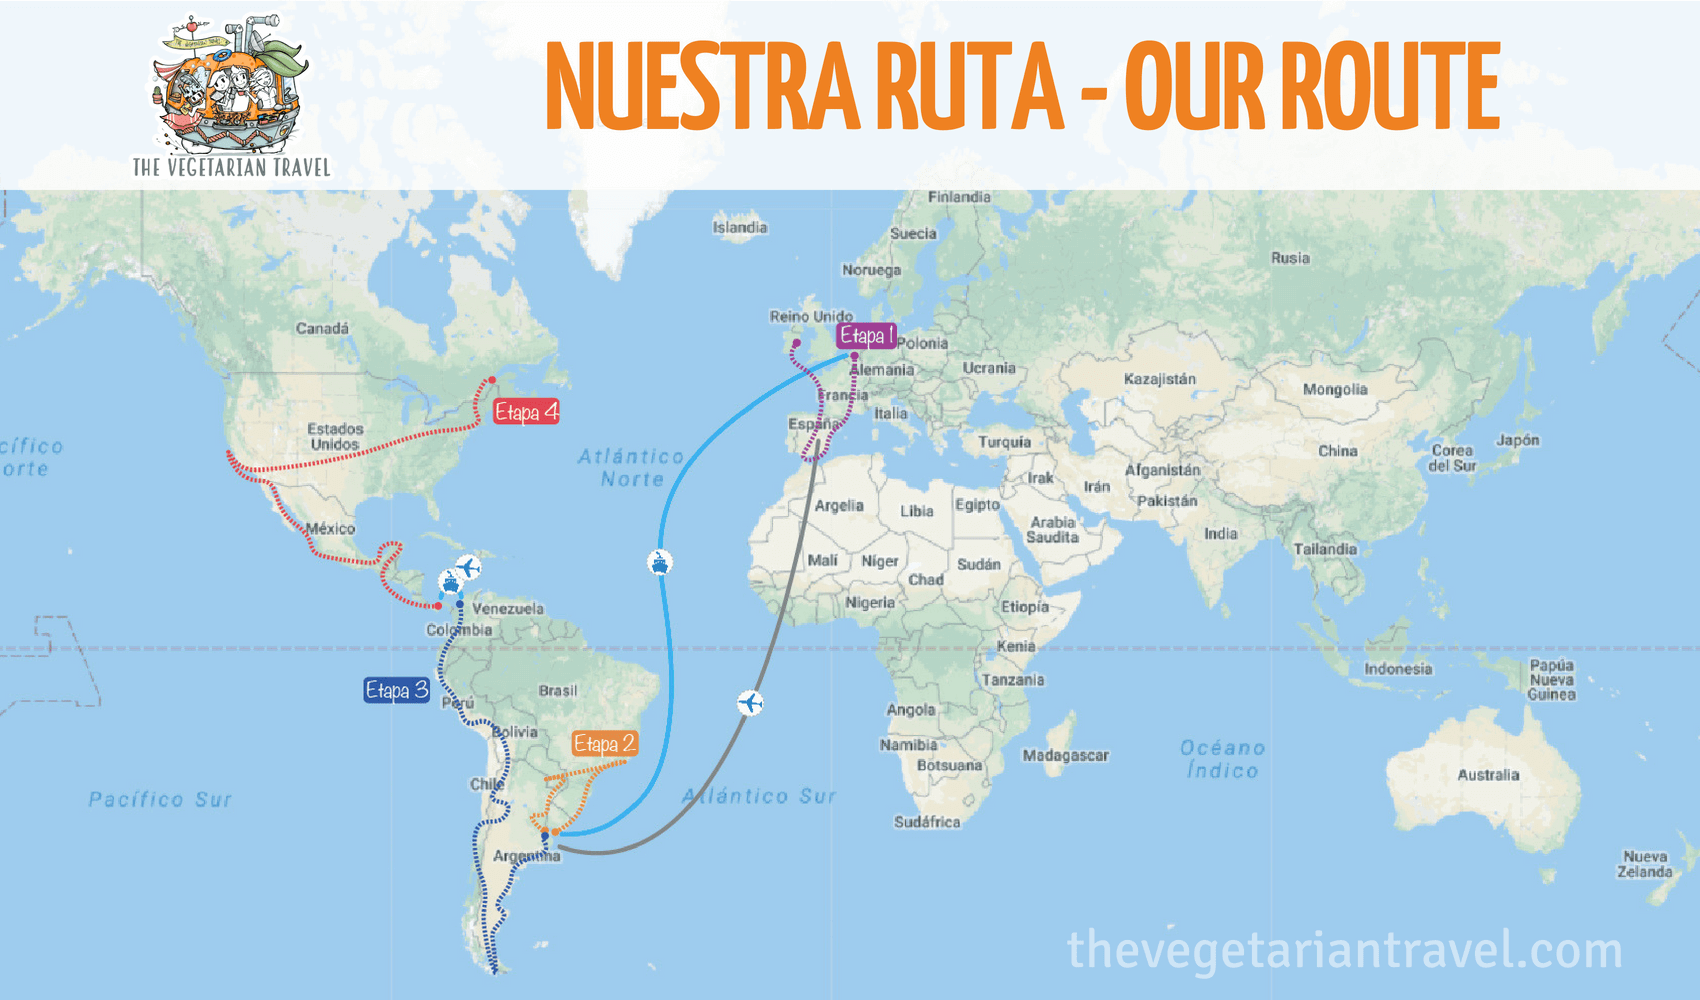 ruta the vegetarian travel